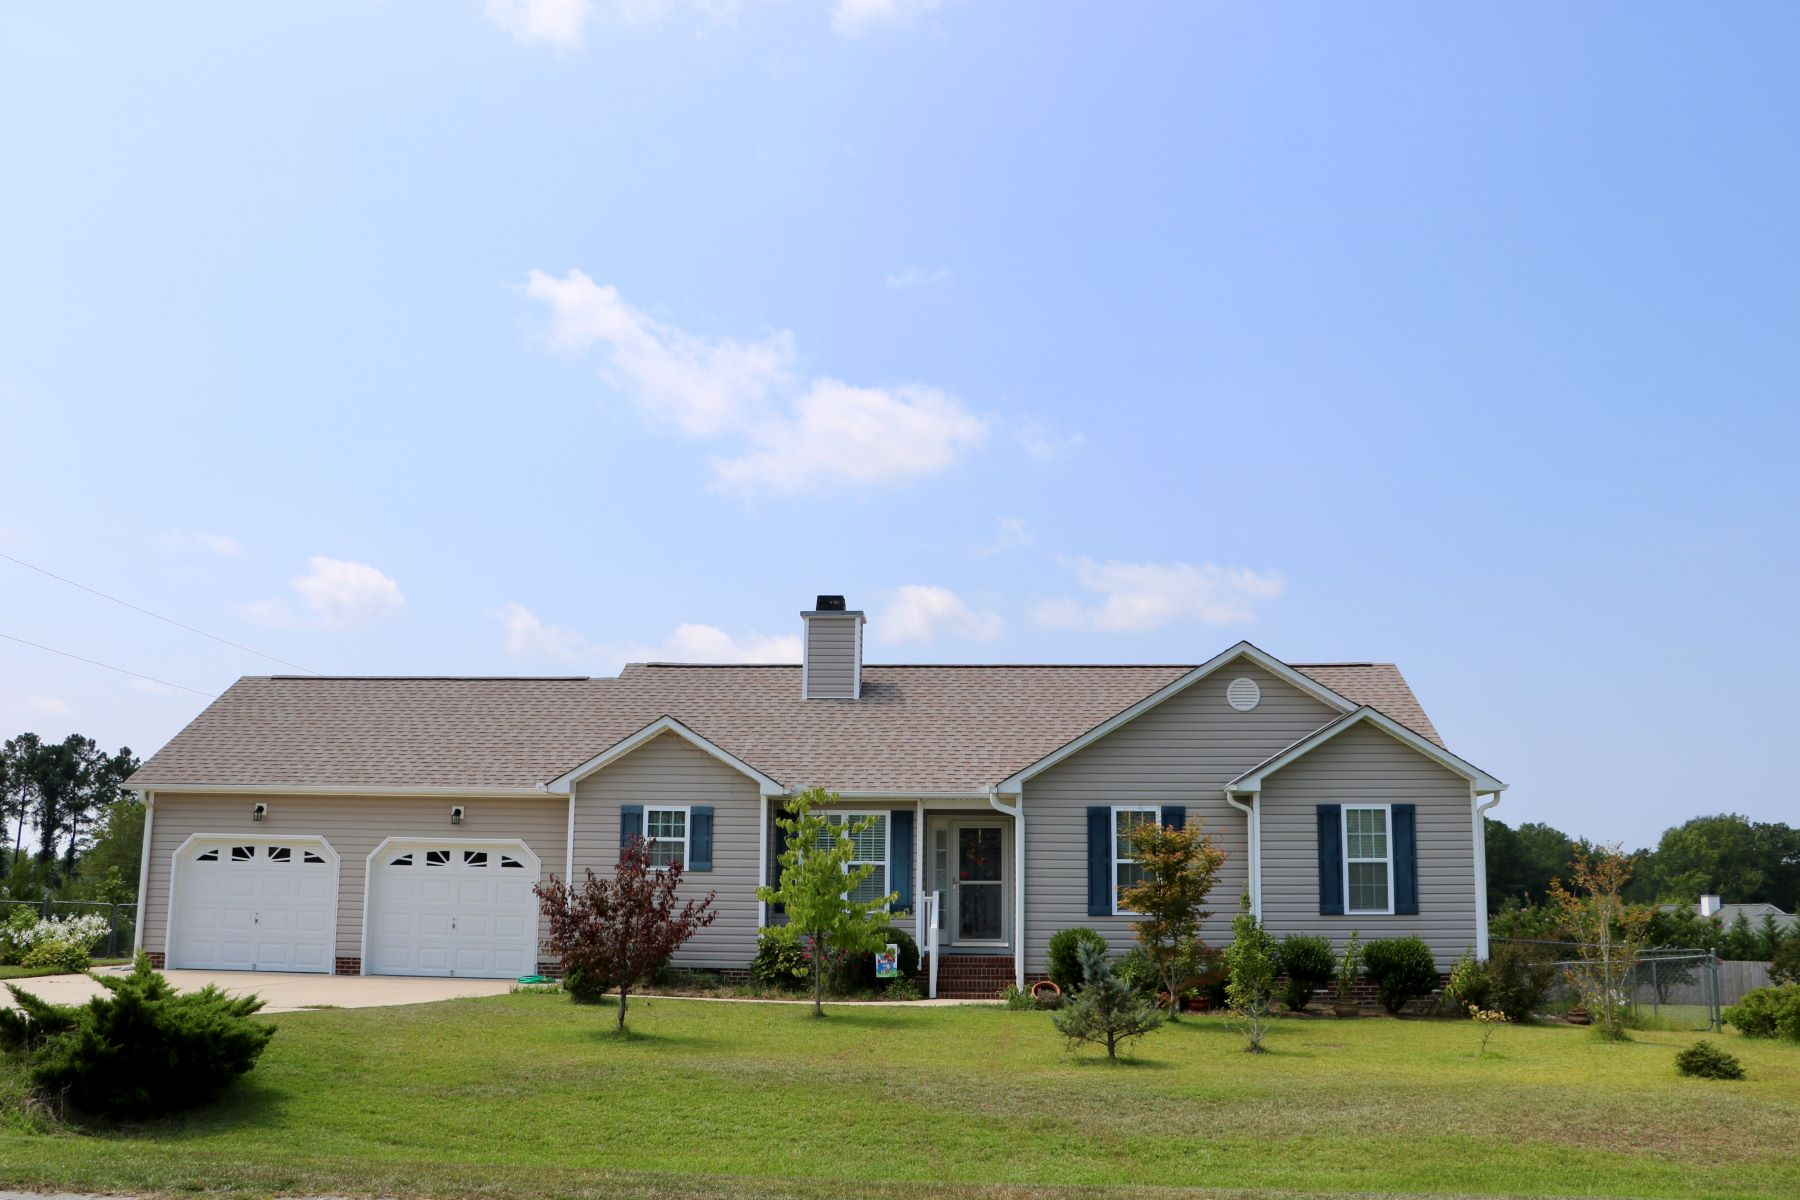 Single Family Homes for Sale at 11 Cirrus Drive, Clayton, NC 11 Cirrus Drive Clayton, North Carolina 27520 United States